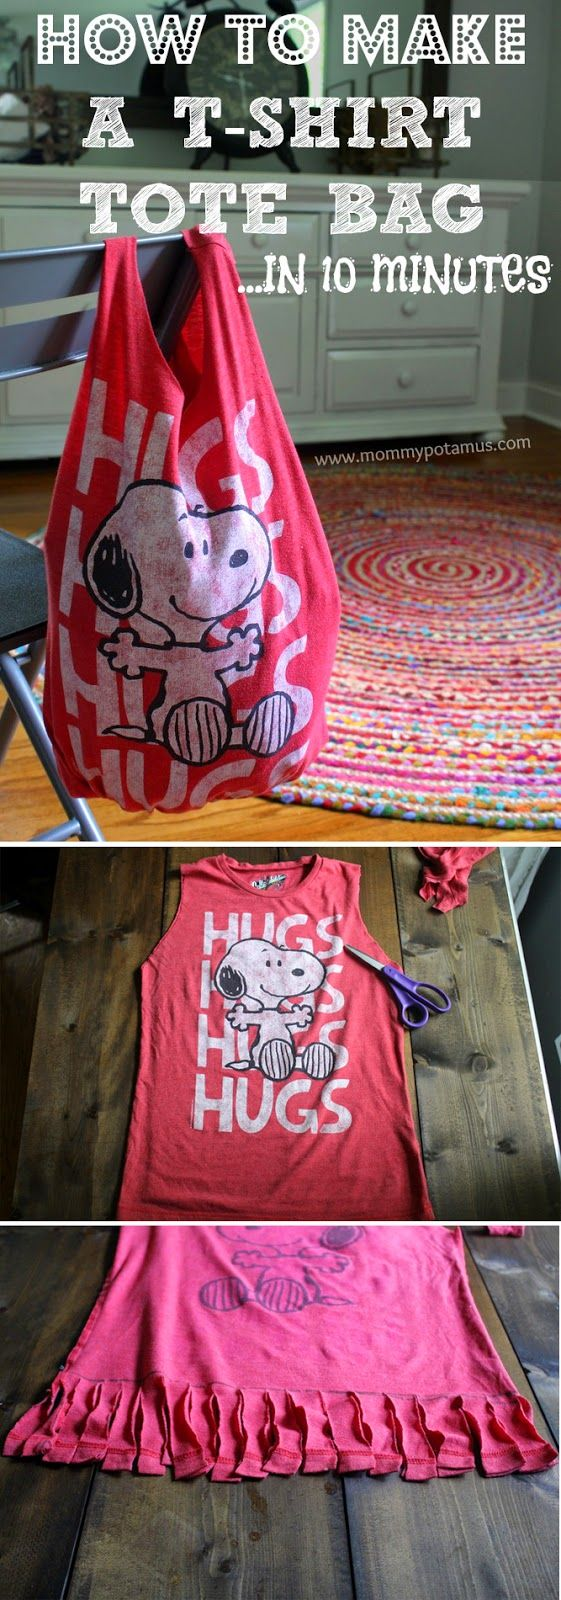 16 Upcycled and Refashioned T-Shirt DIY Tutorials